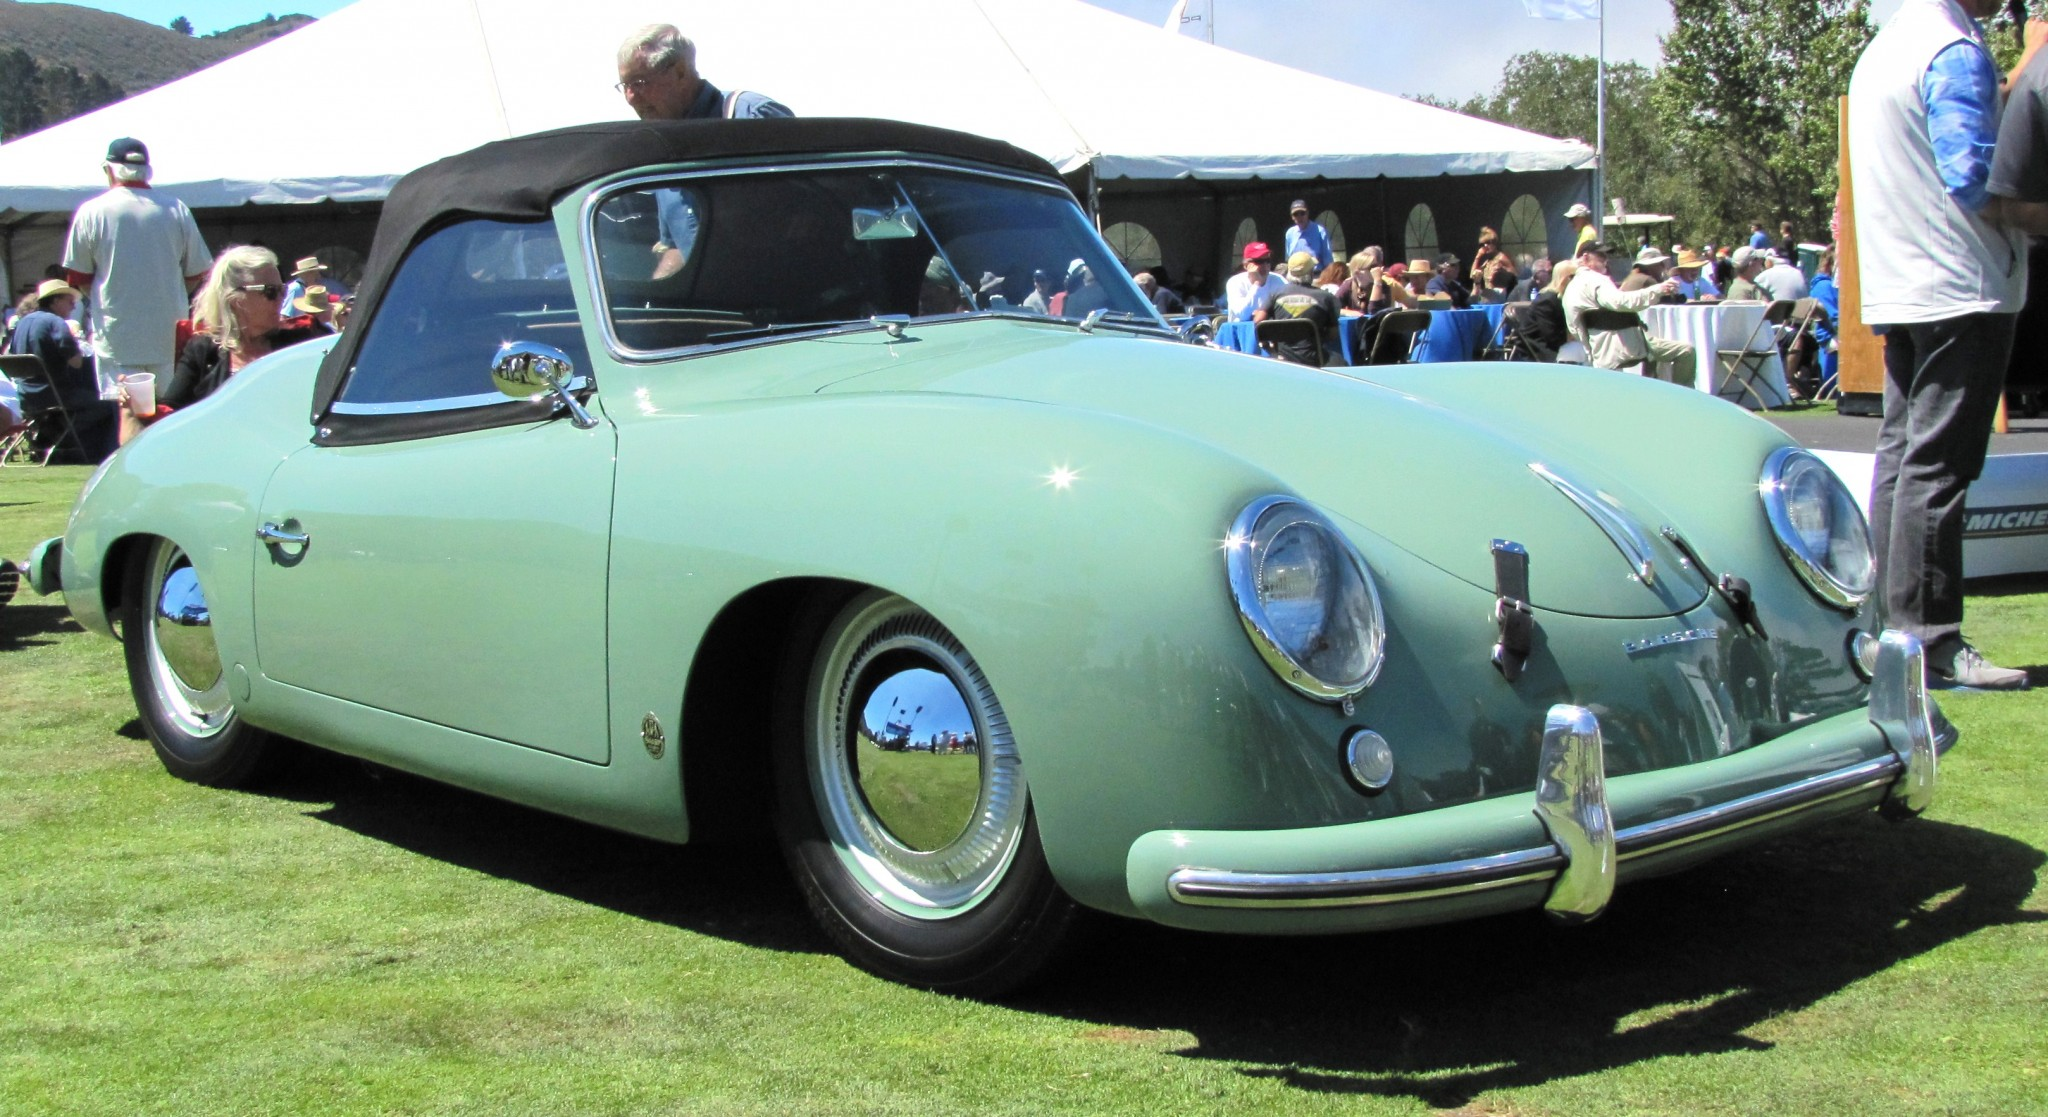 The rare and valuable 1953 Porsche 356 America roadster was just another used  car in 1955